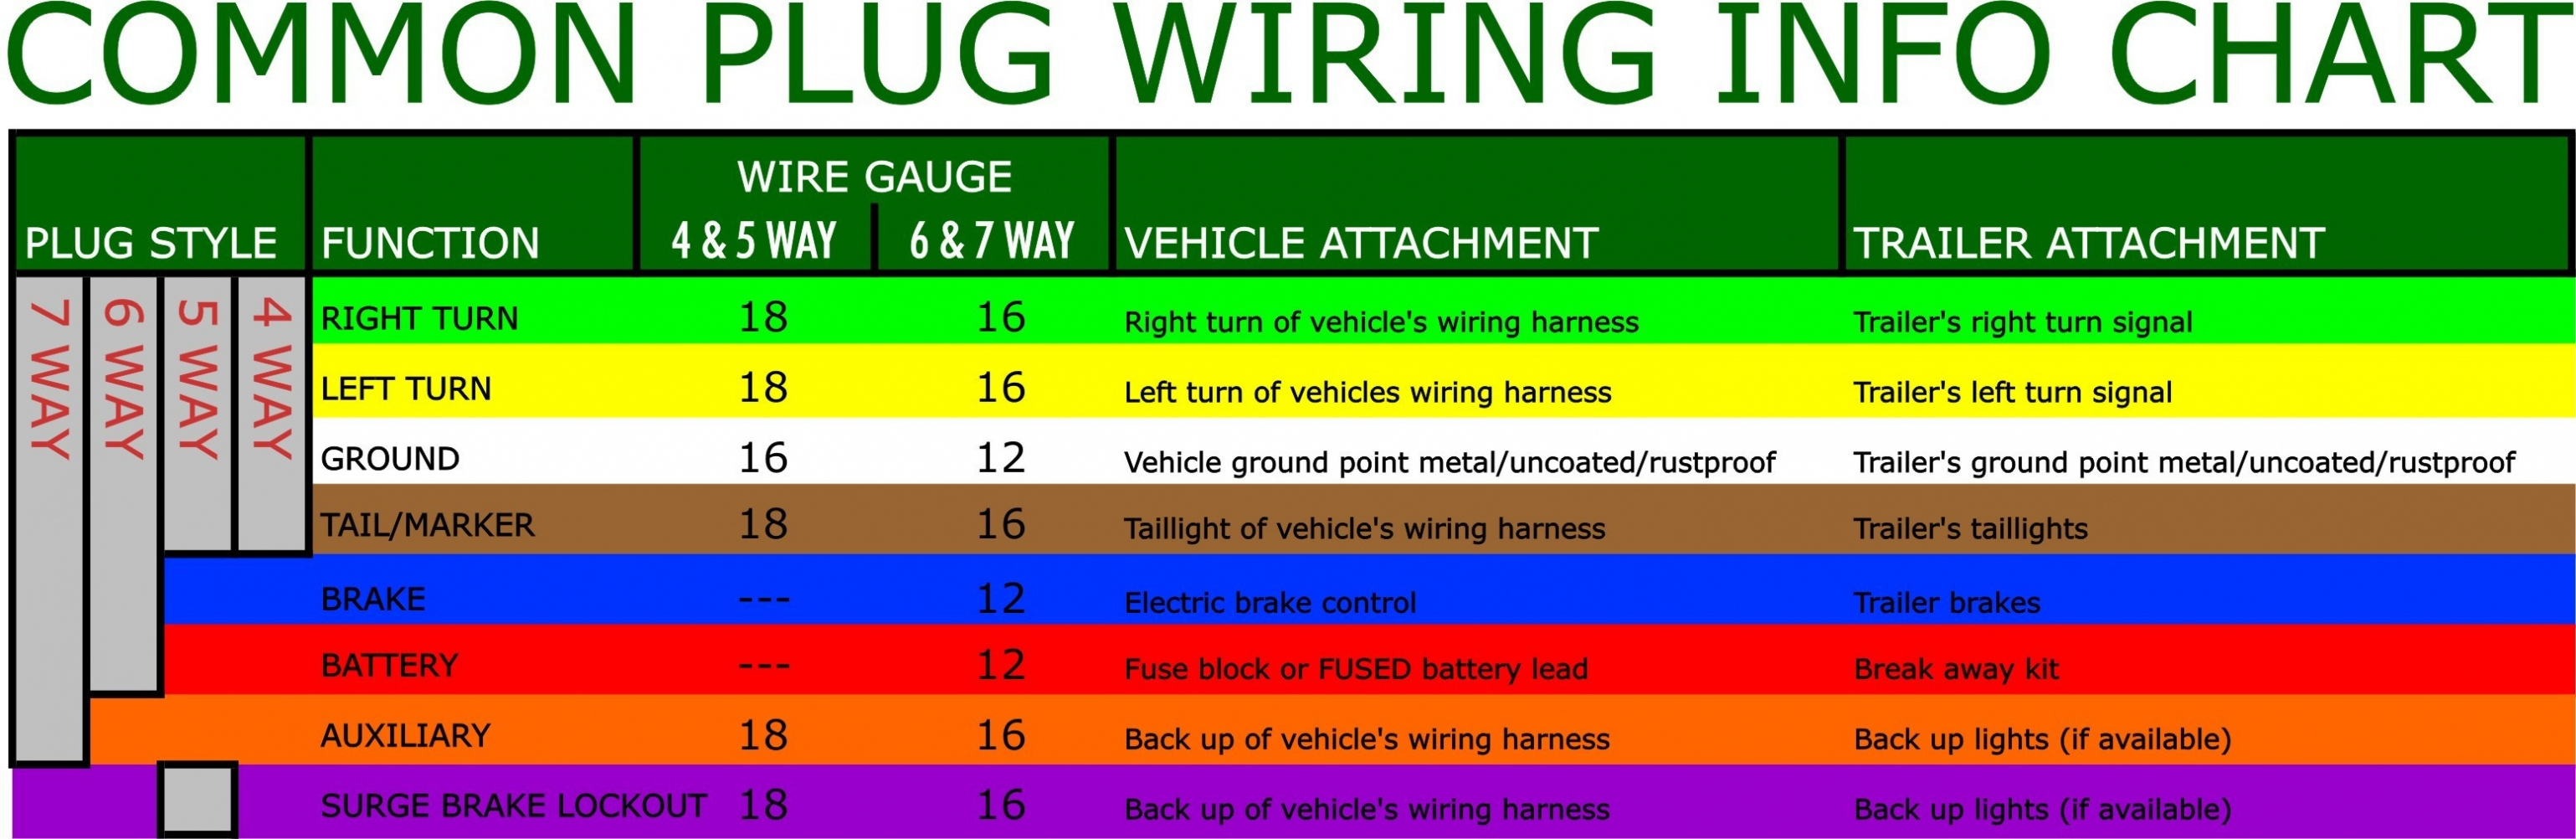 wiring diagram for 7 pin round trailer plug new wiring diagram 7 pin trailer wiring diagram 7 pin to 4 pin Trailer Wiring Diagram 7 Pin To 4 Pin